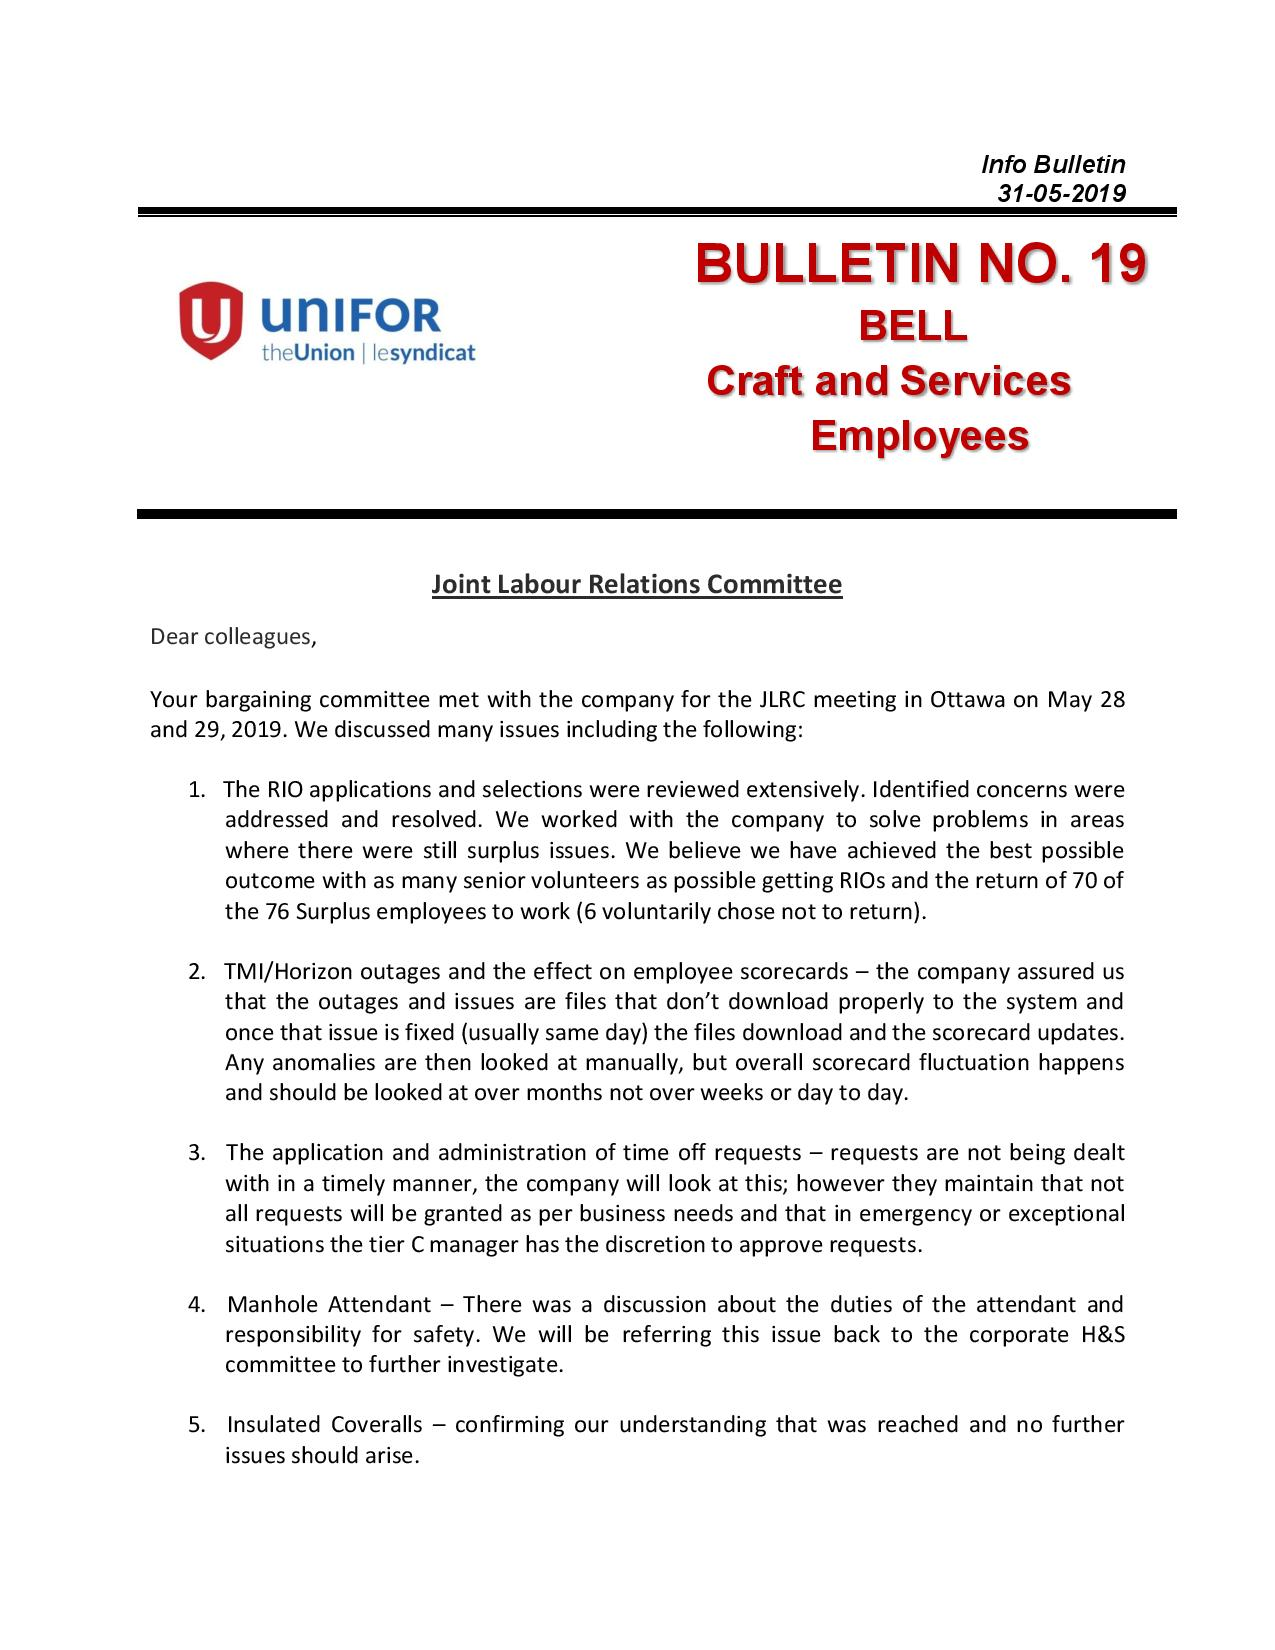 Info Bulletin English 19_May 31 2019-page-001.jpg